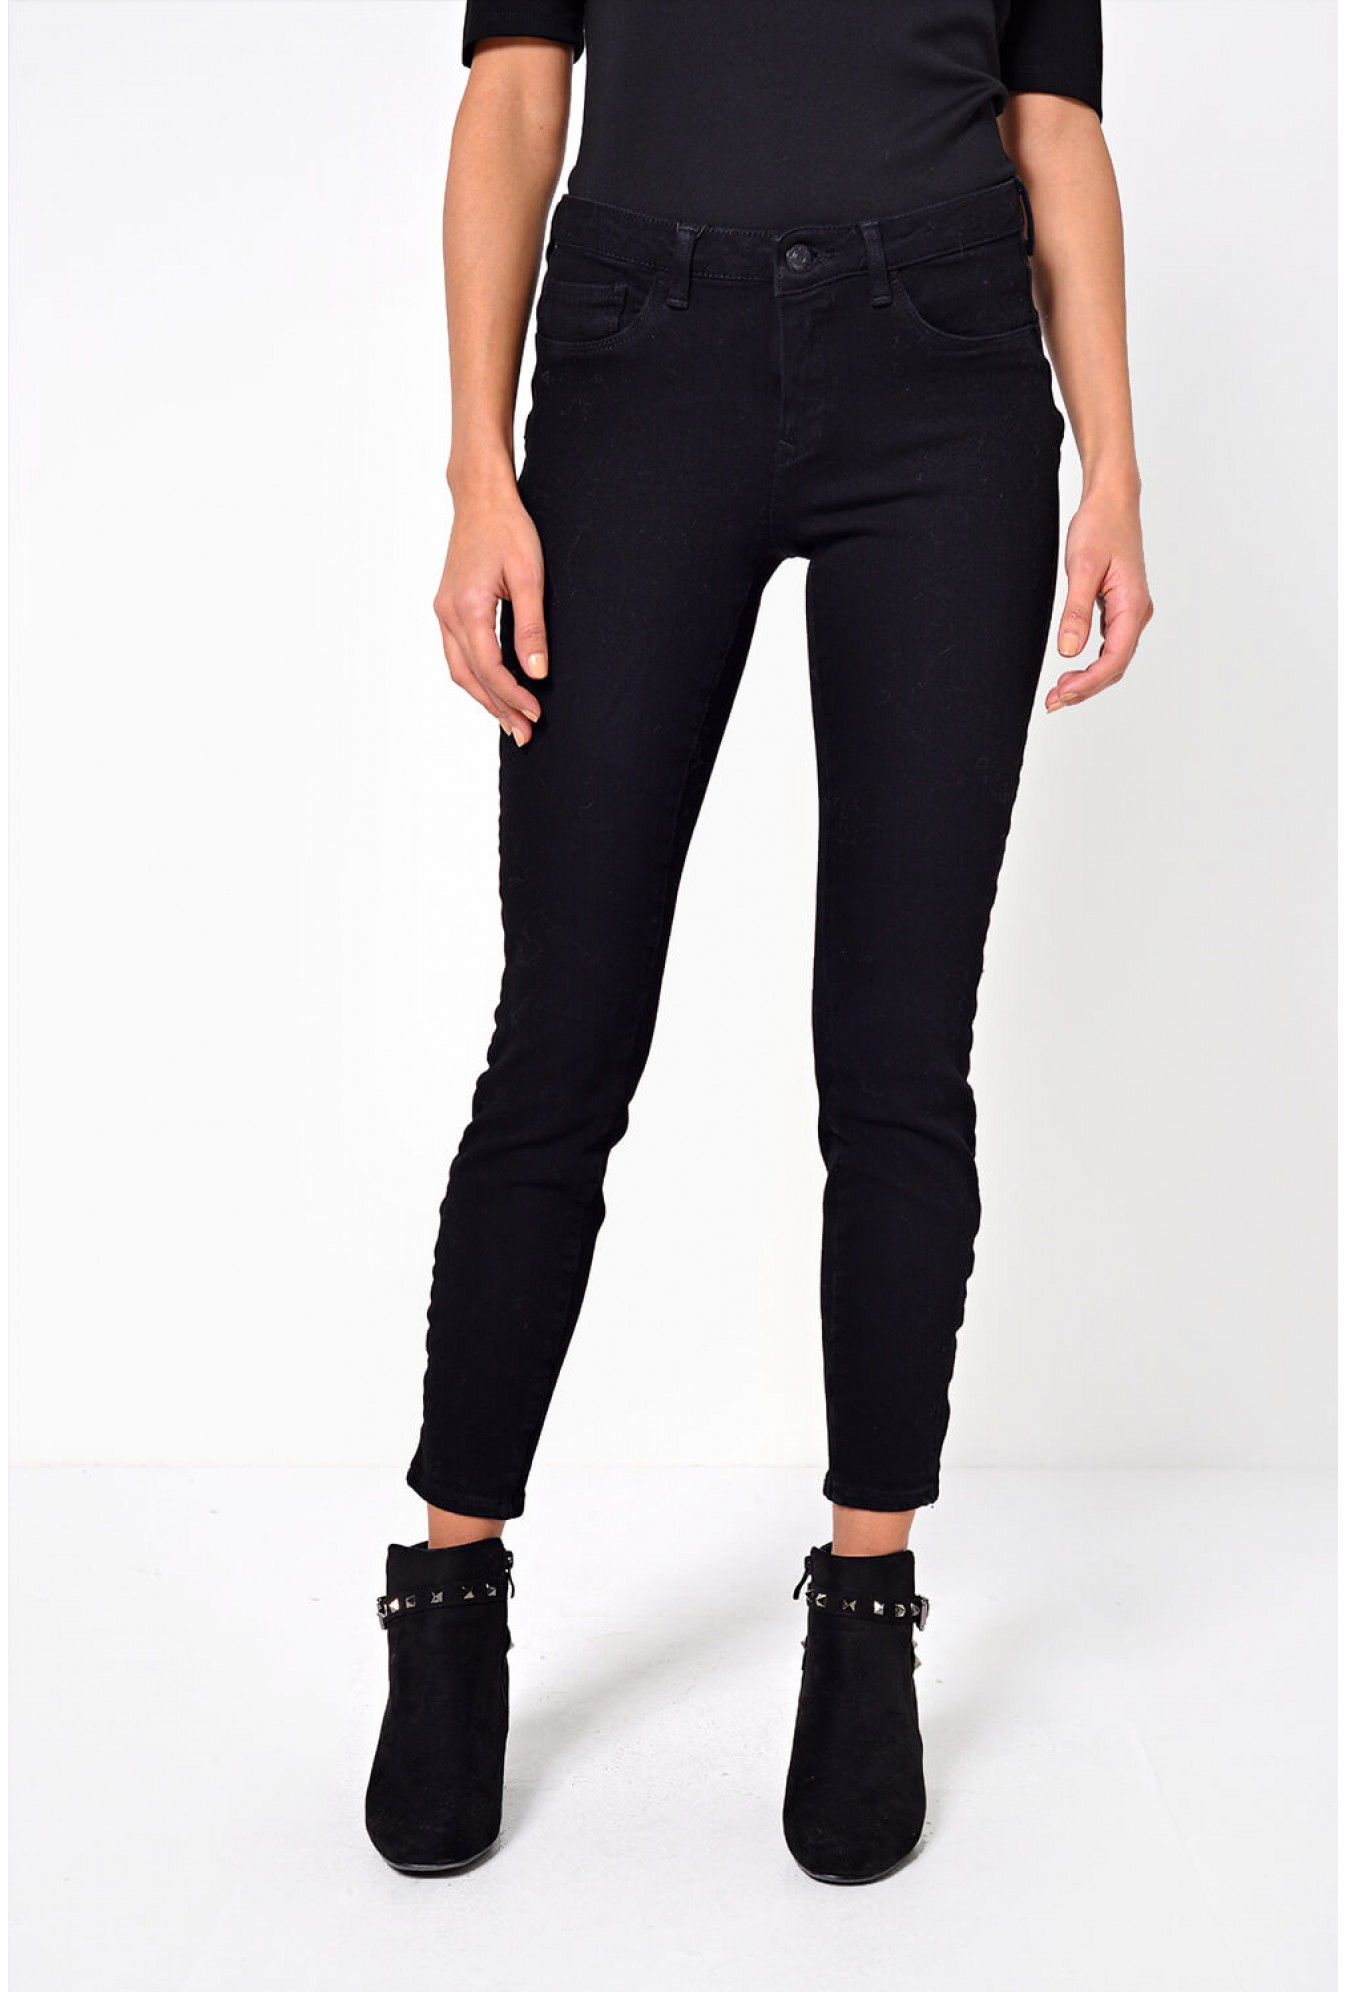 meet lower price with on feet images of Vero Moda Icon Regular Push Up Jeans in Black | iCLOTHING